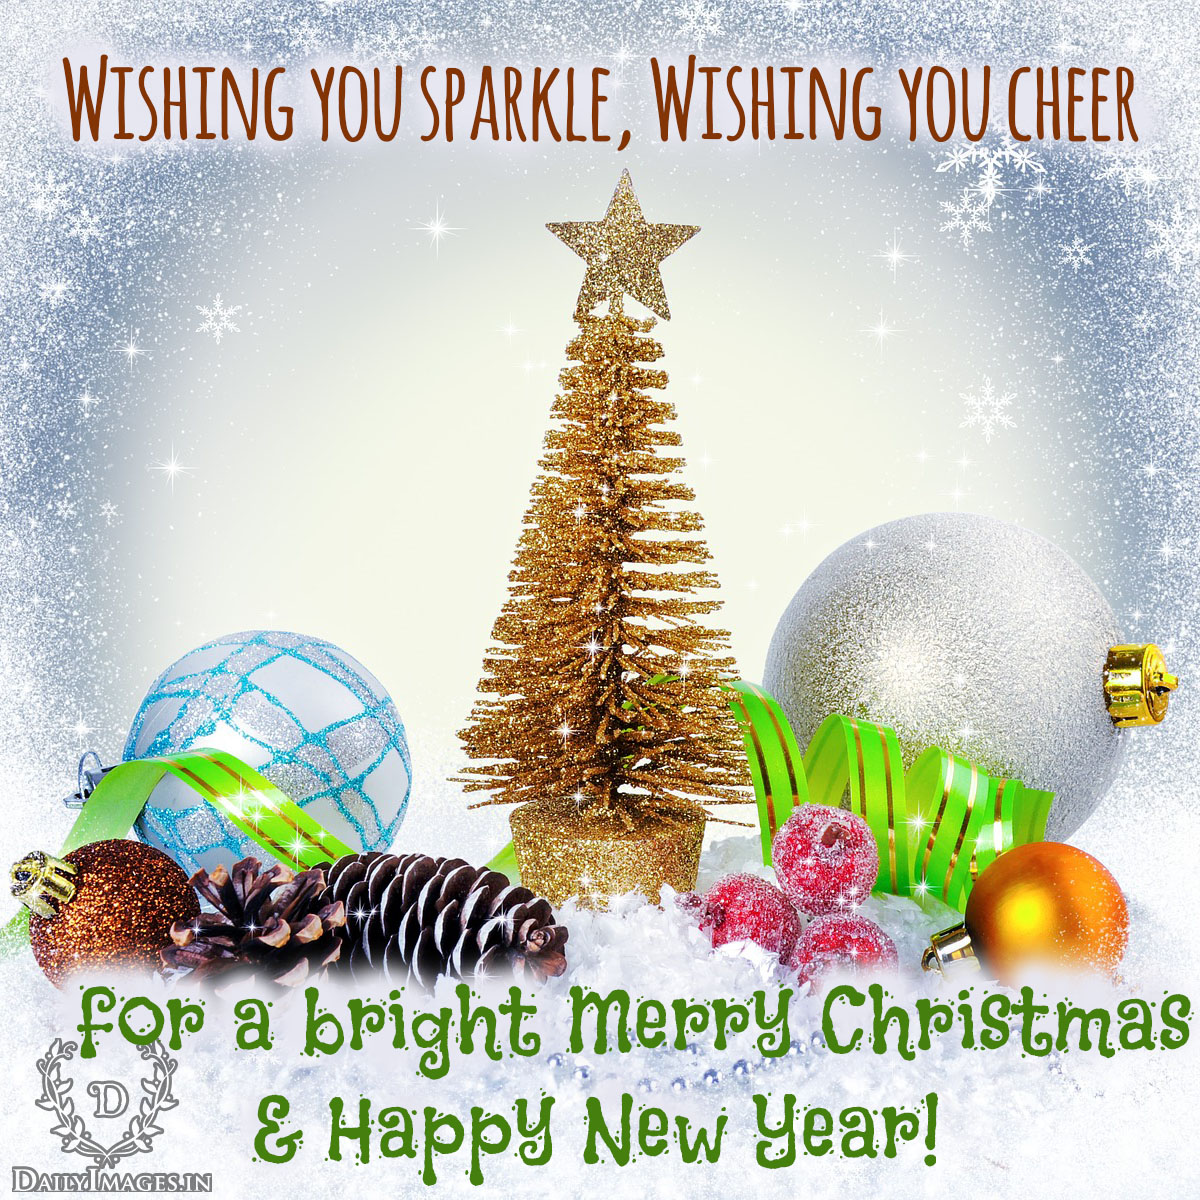 Wishing you sparkle, Wishing you cheer for a bright Merry Christmas & Happy New Year